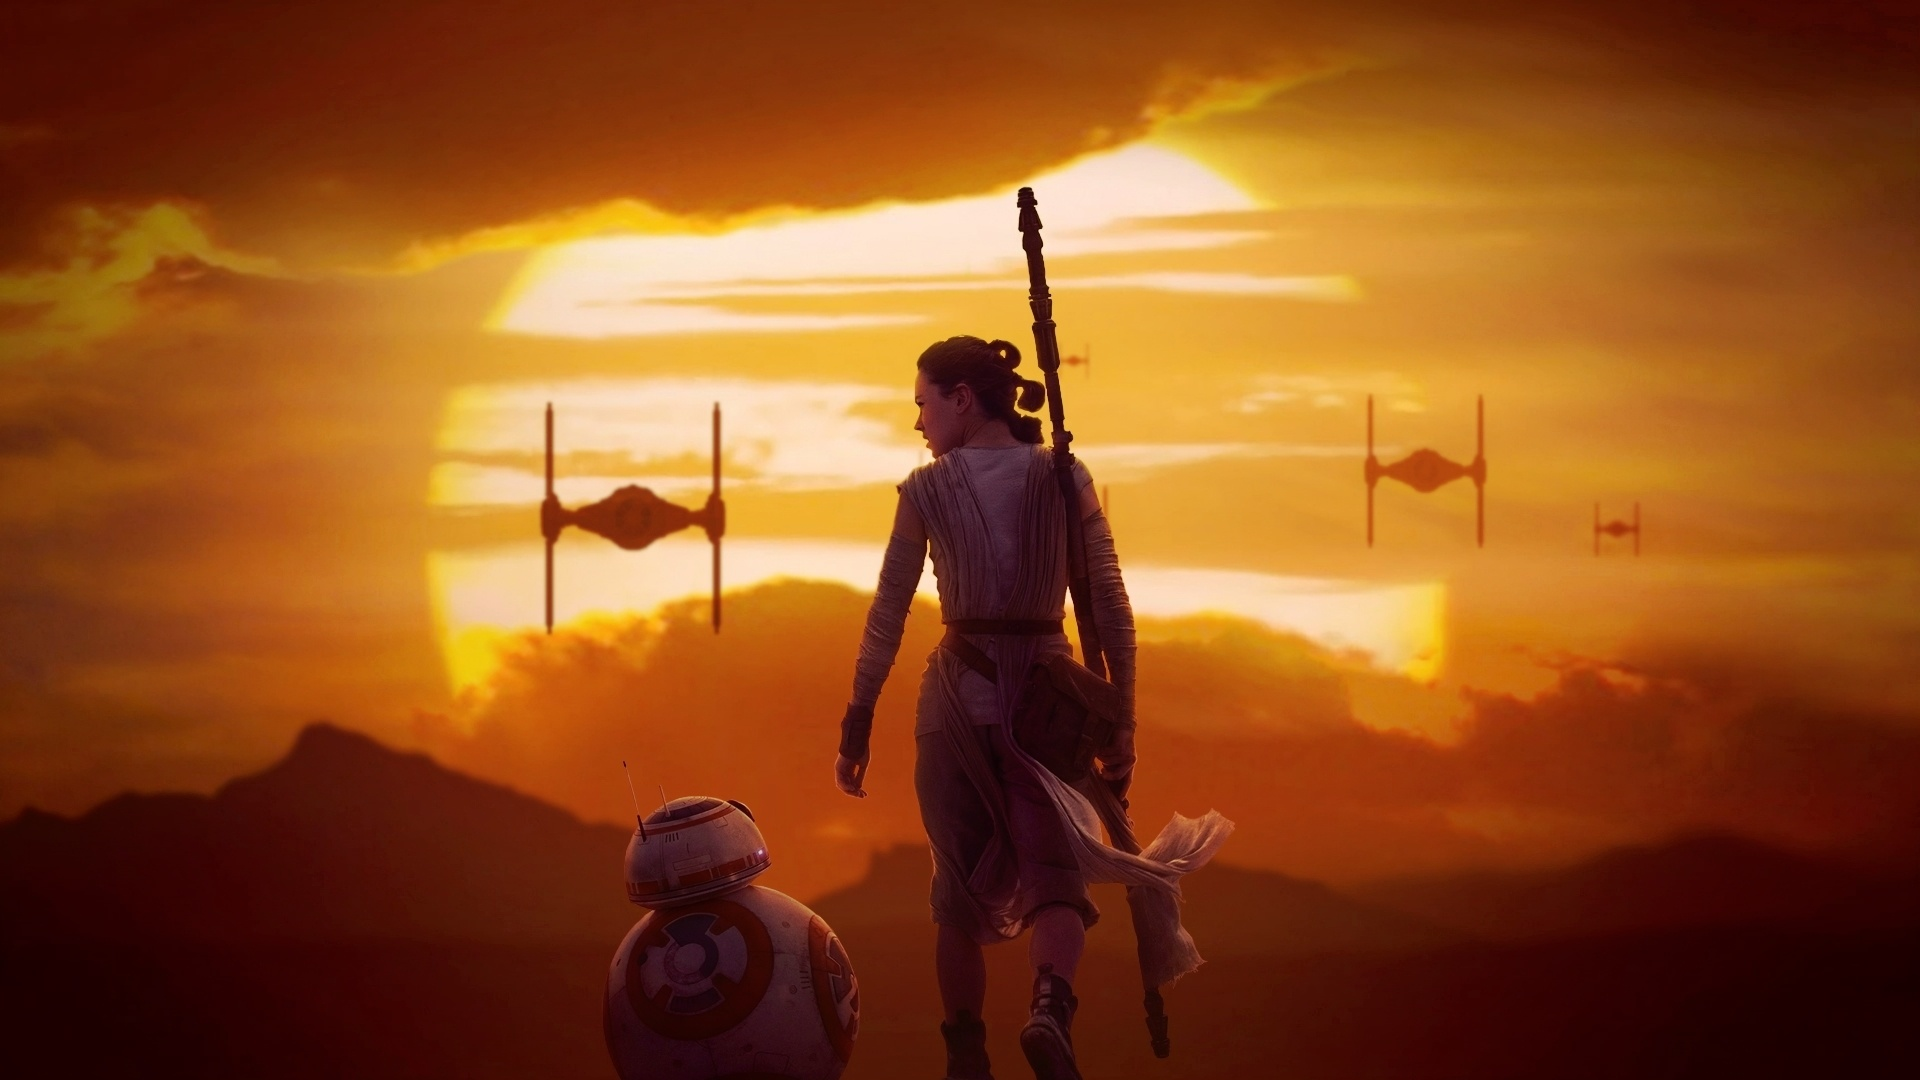 Download-Rey-and-BB-Star-Wars-by-Lightsabered-1920x1080-wallpaper-wp3605059